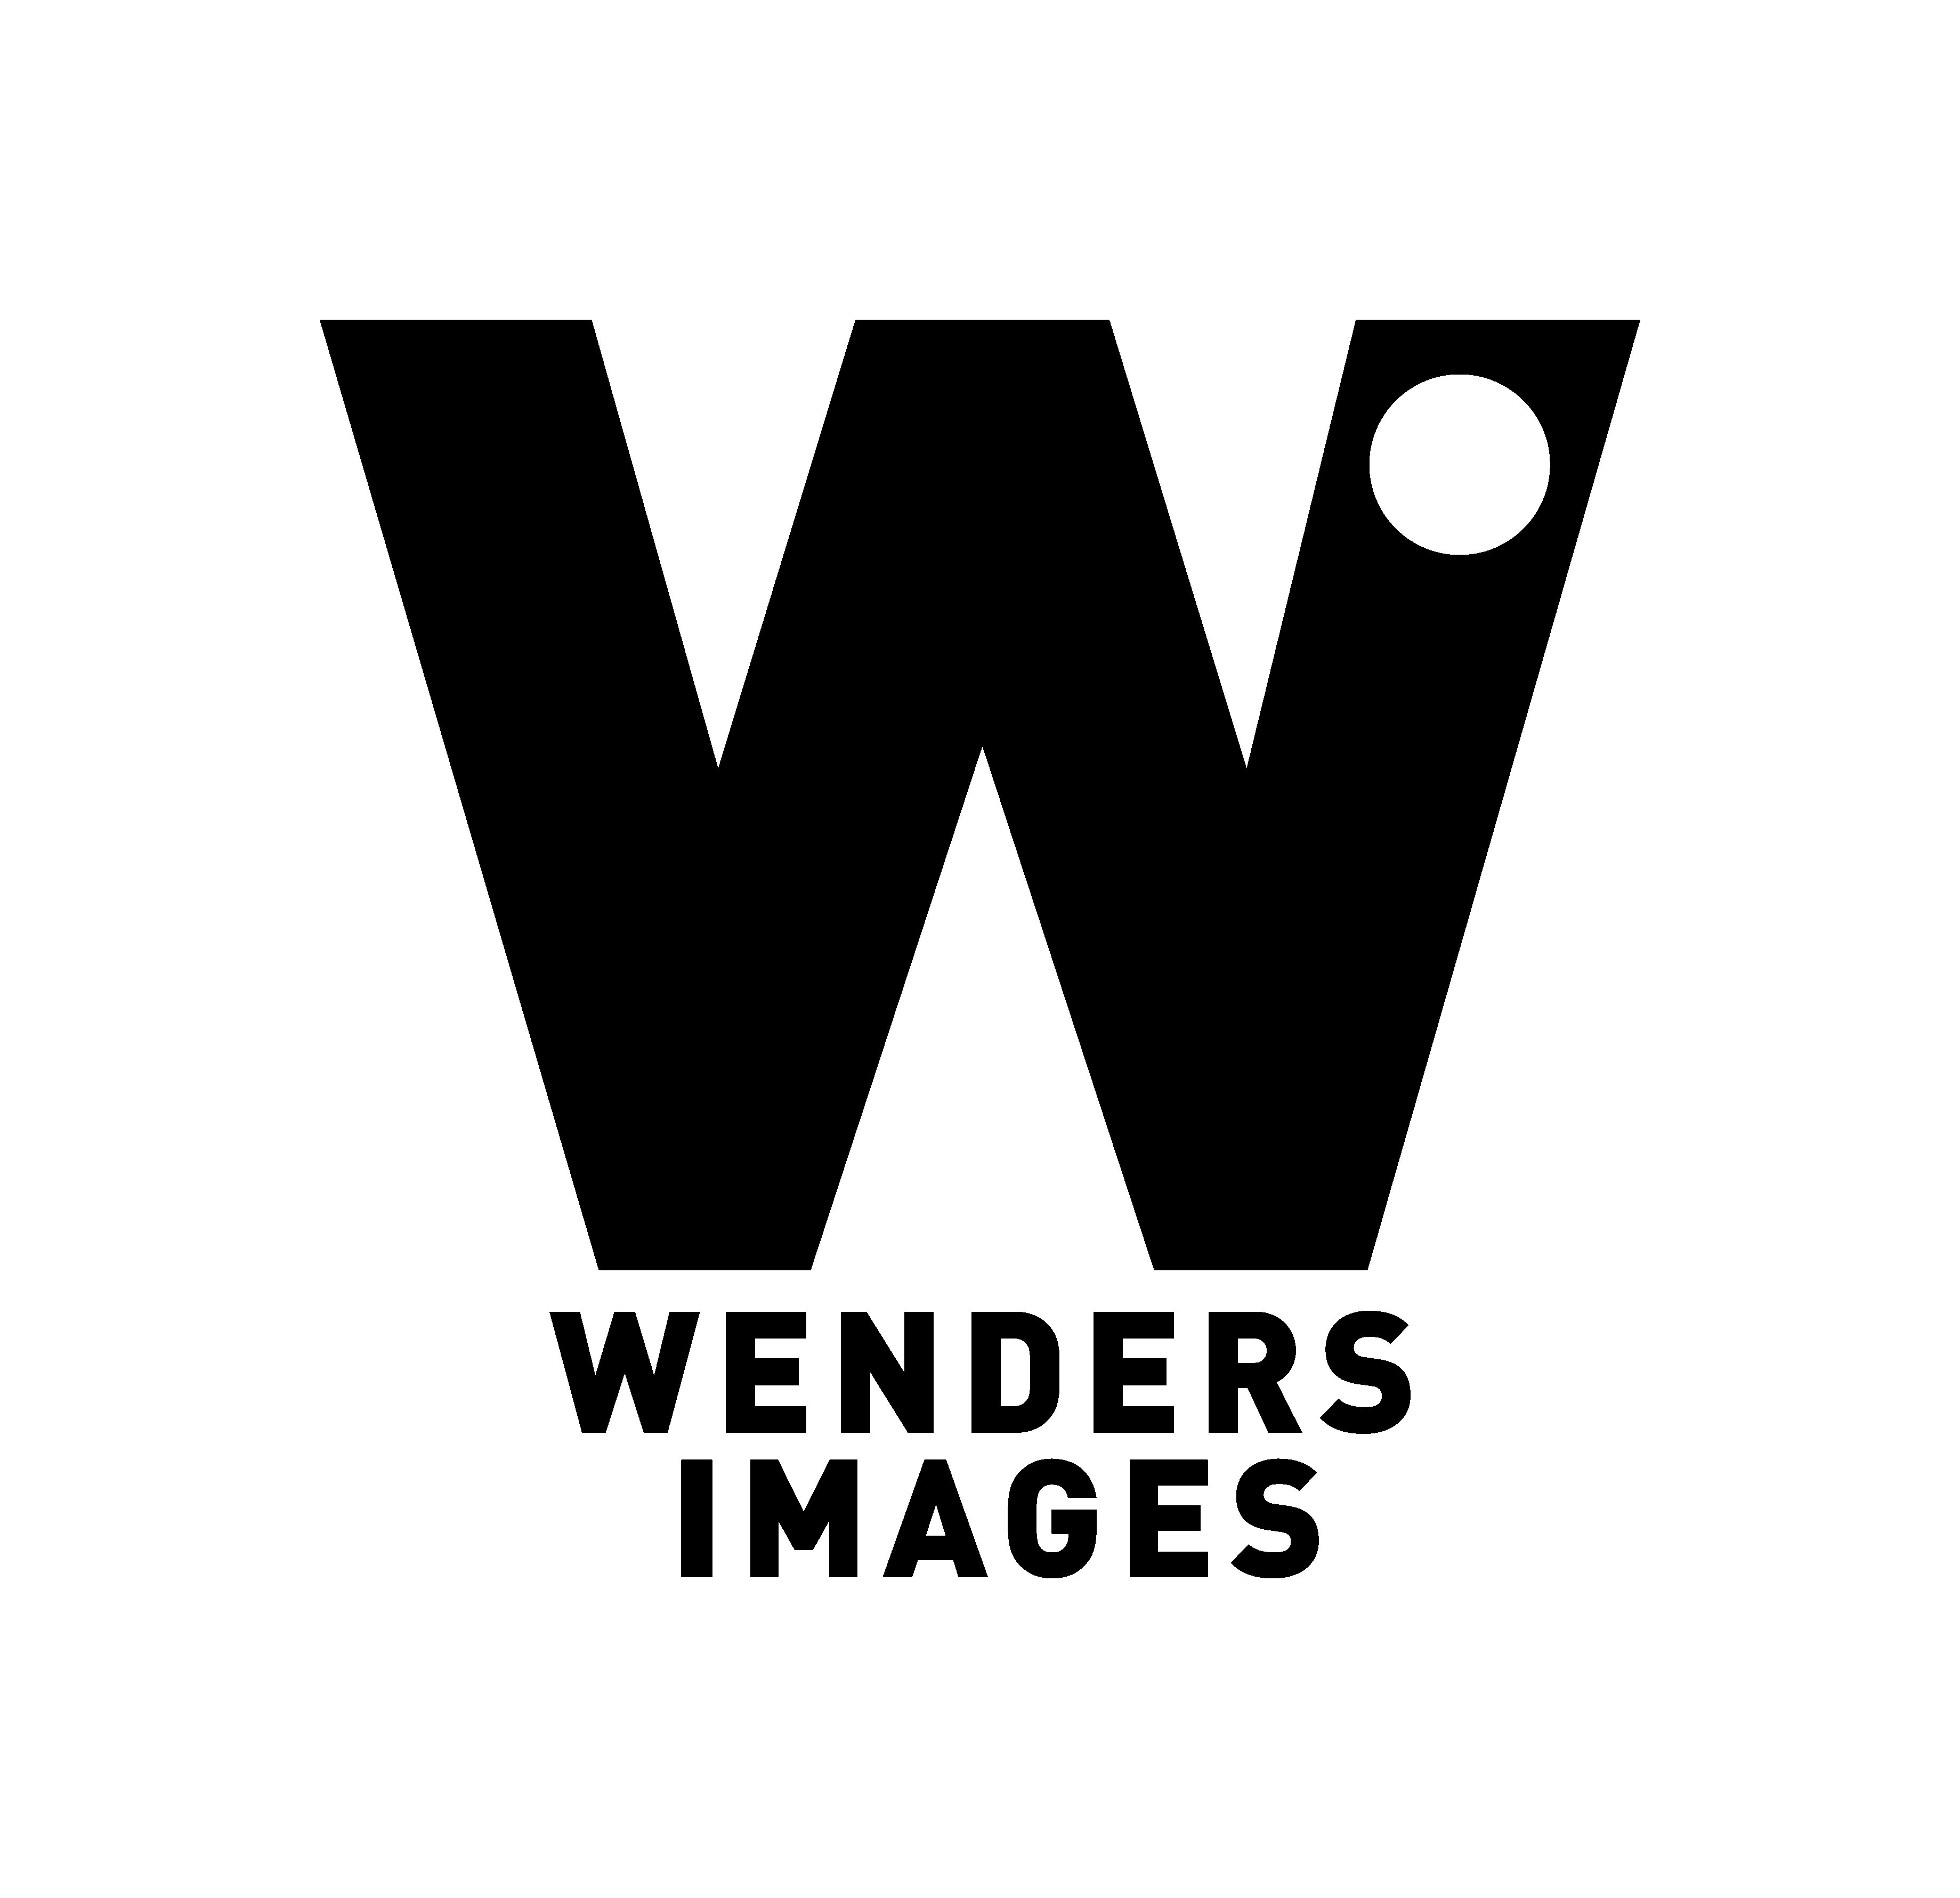 Logo Wenders Images